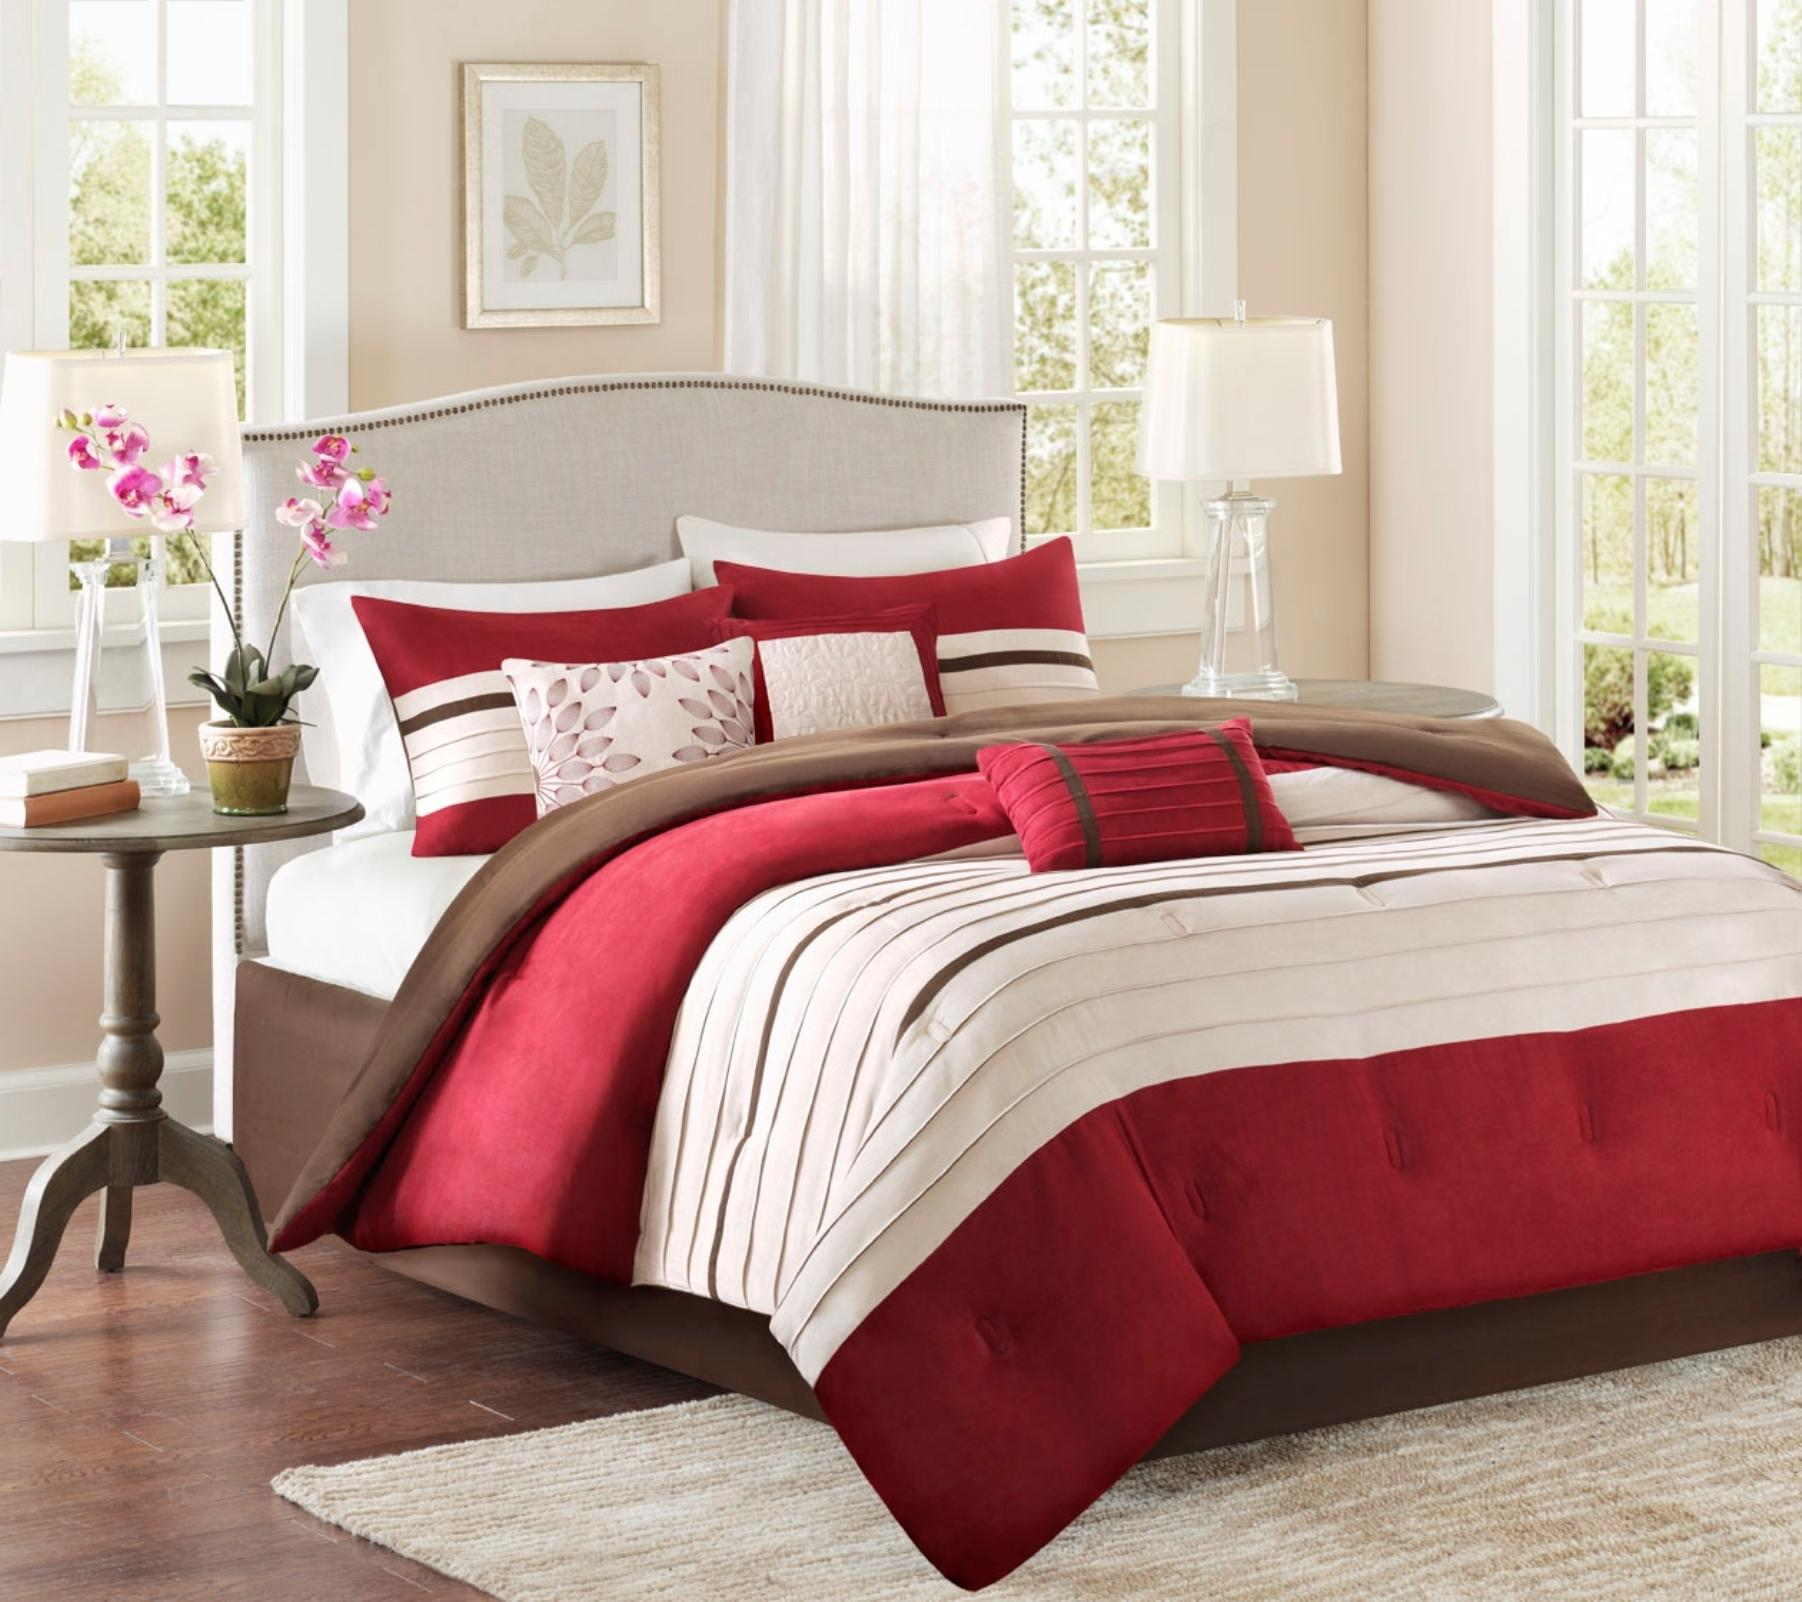 Cannon 7-piece Palmer Microsuede Comforter Set - Pleated